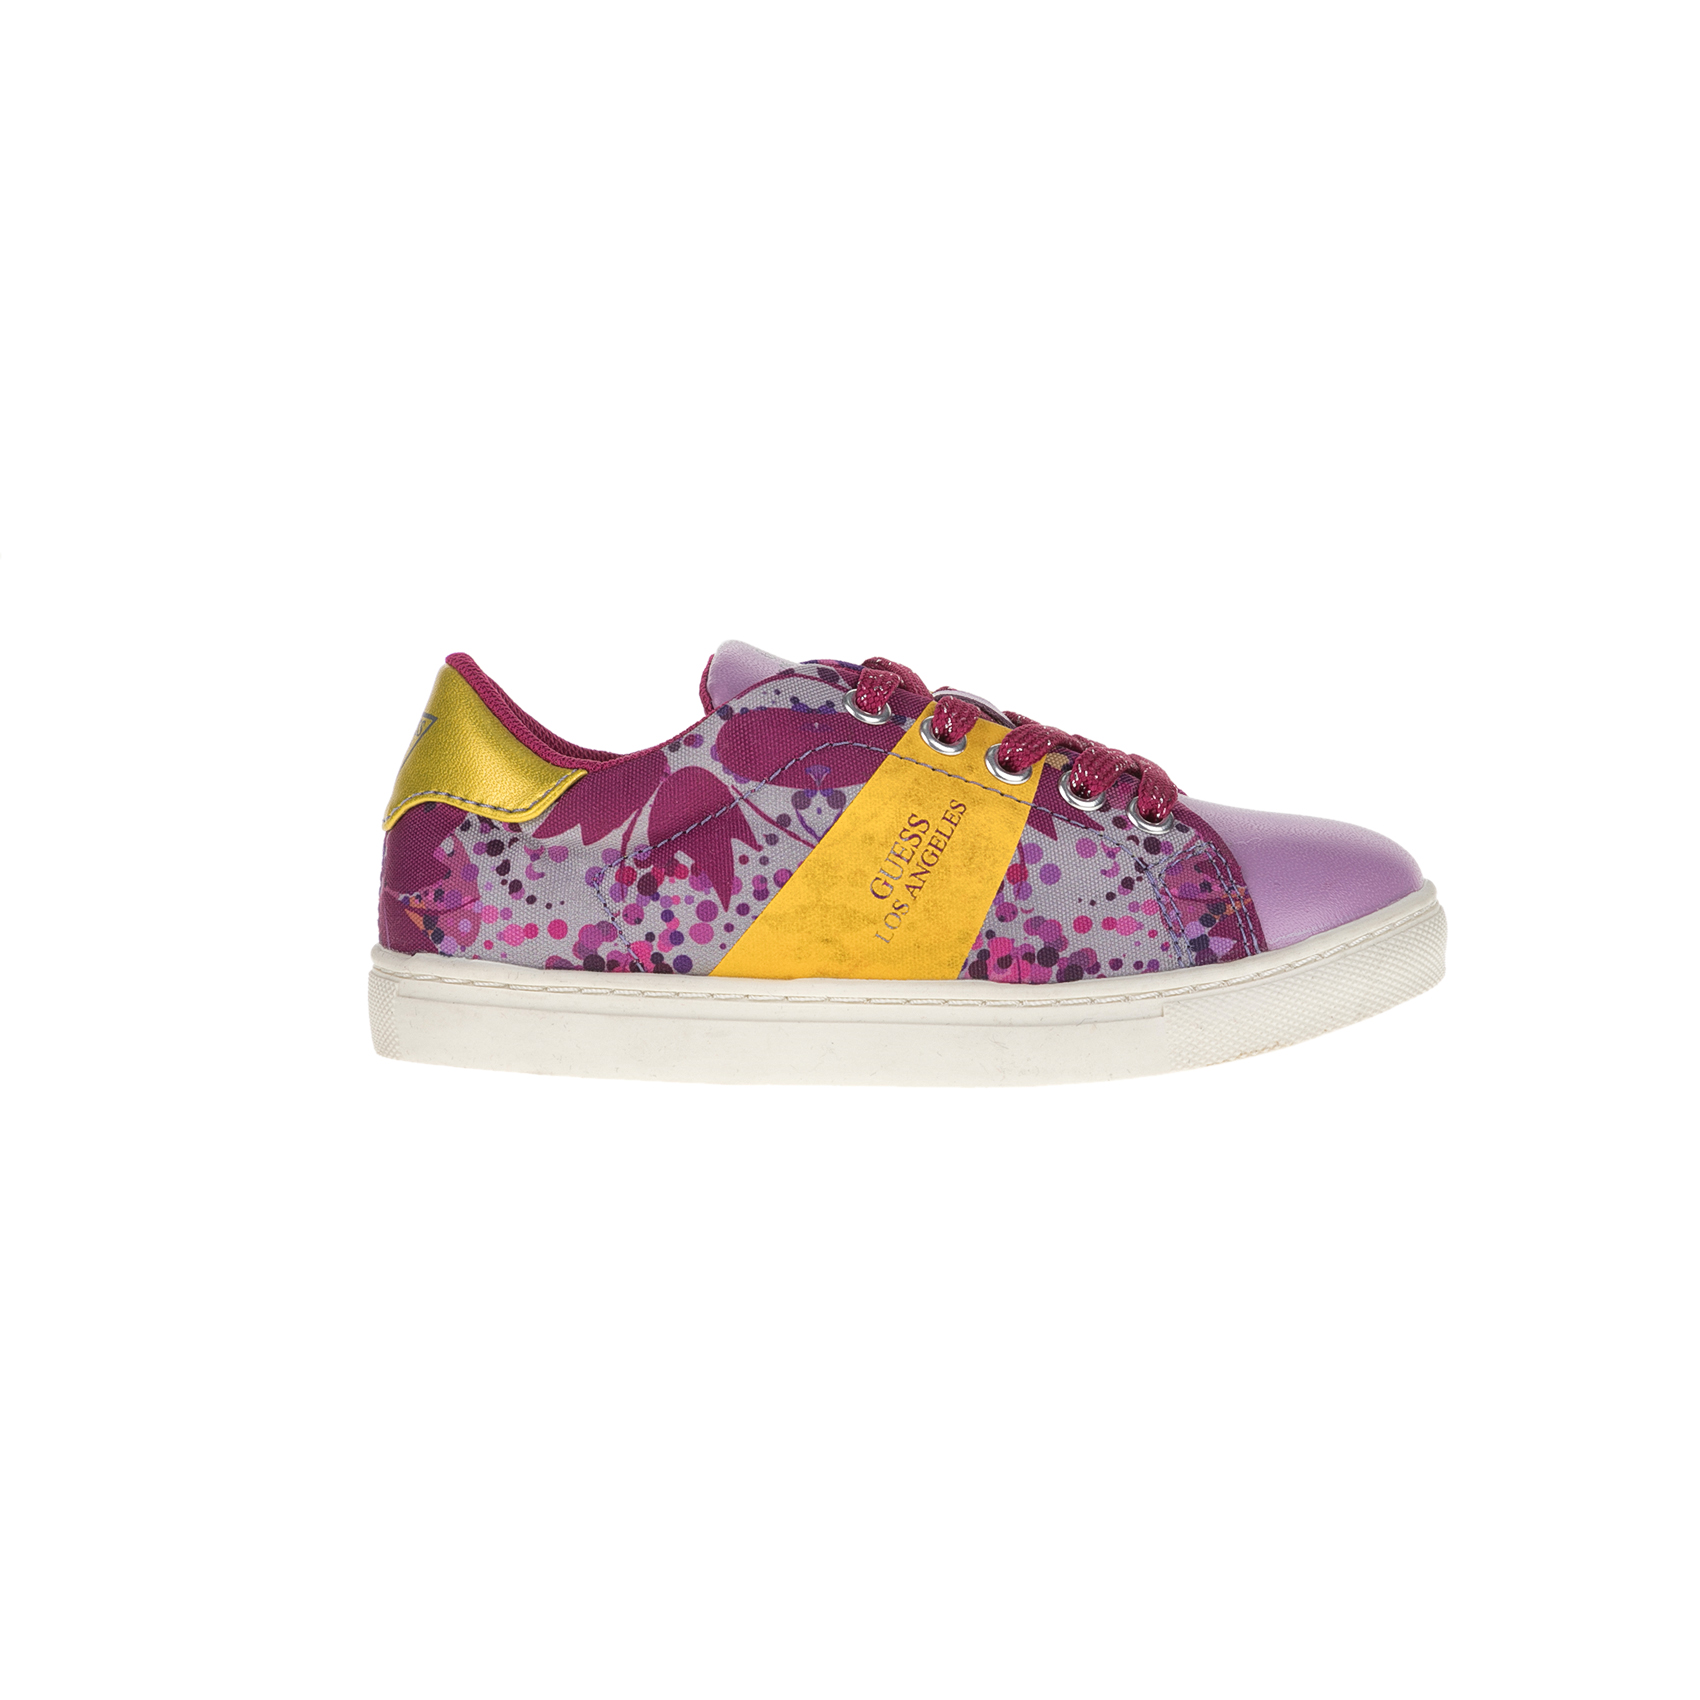 GUESS KIDS – Κοριτσίστικα sneakers GUESS KIDS μοβ